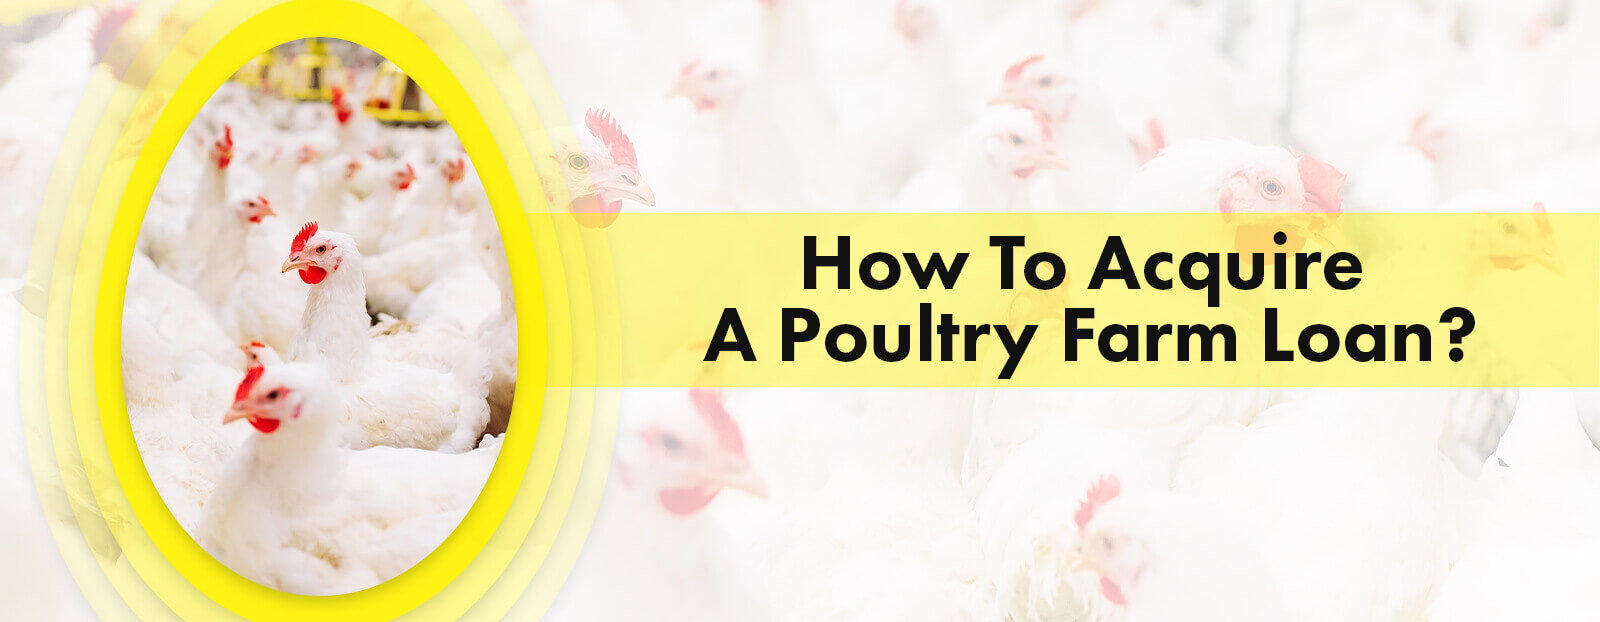 How To Acquire A Poultry Farm Loan?